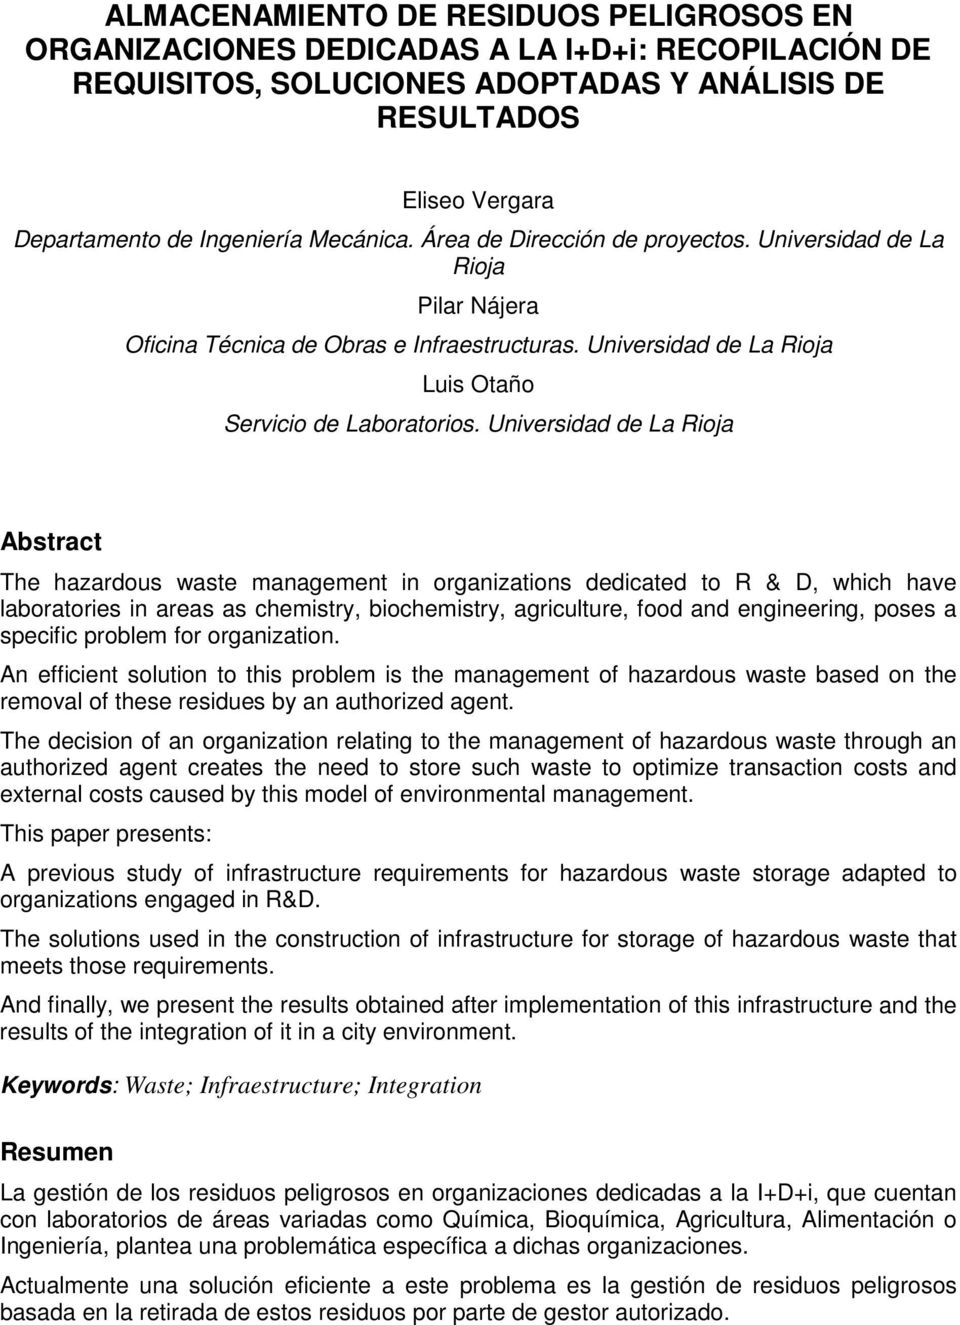 Universidad de La Rioja Abstract The hazardous waste management in organizations dedicated to R & D, which have laboratories in areas as chemistry, biochemistry, agriculture, food and engineering,